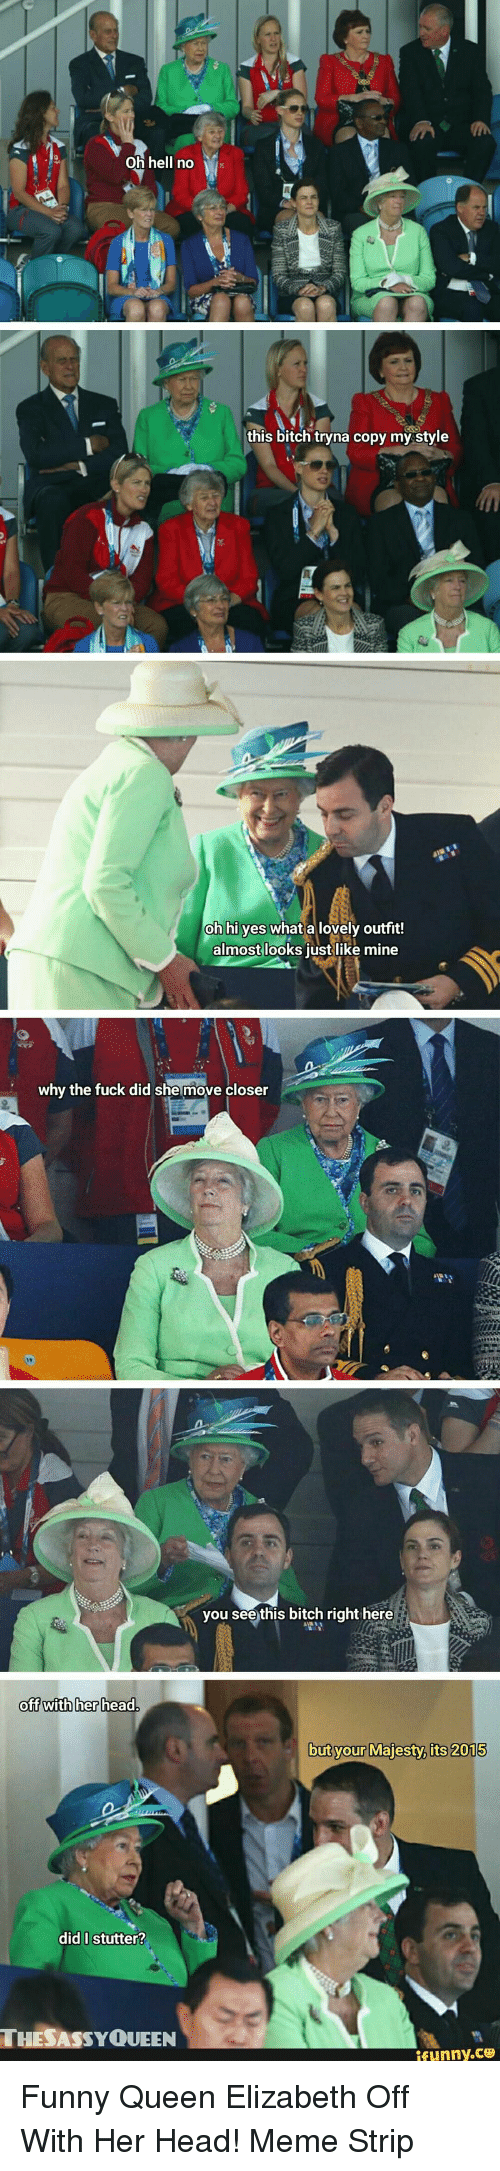 oh hell no: Oh hell no  this bitch tryna copy my style  oh hi yes what a lovely outfit!  almost looks just like mine  why the fuck did she move closer  you see this bitch right here  oft with her head  but your Majesty. its 2015  did I stutter?  THESASSYQUEEN Funny Queen Elizabeth Off With Her Head! Meme Strip